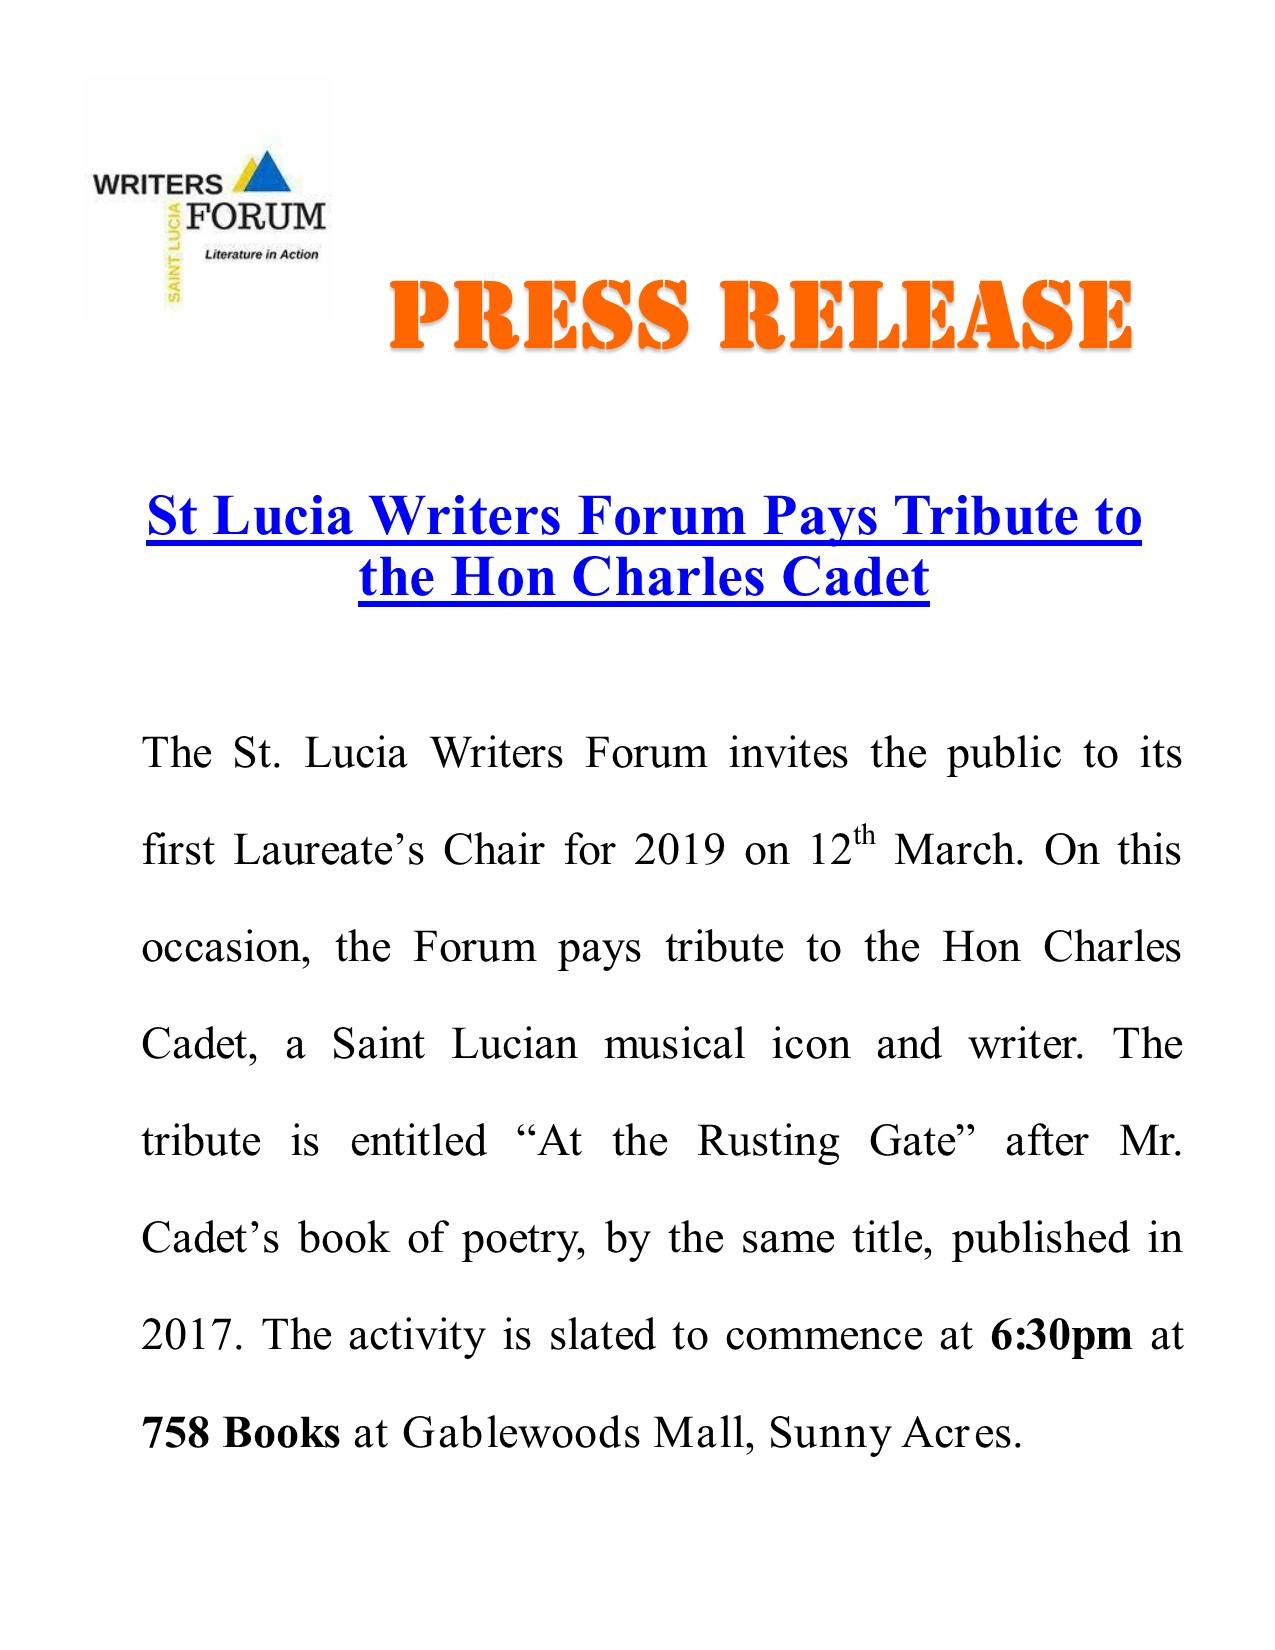 The Laureate's Chair - Tribute to the Hon Charles Cadet, Saint Lucian musical icon